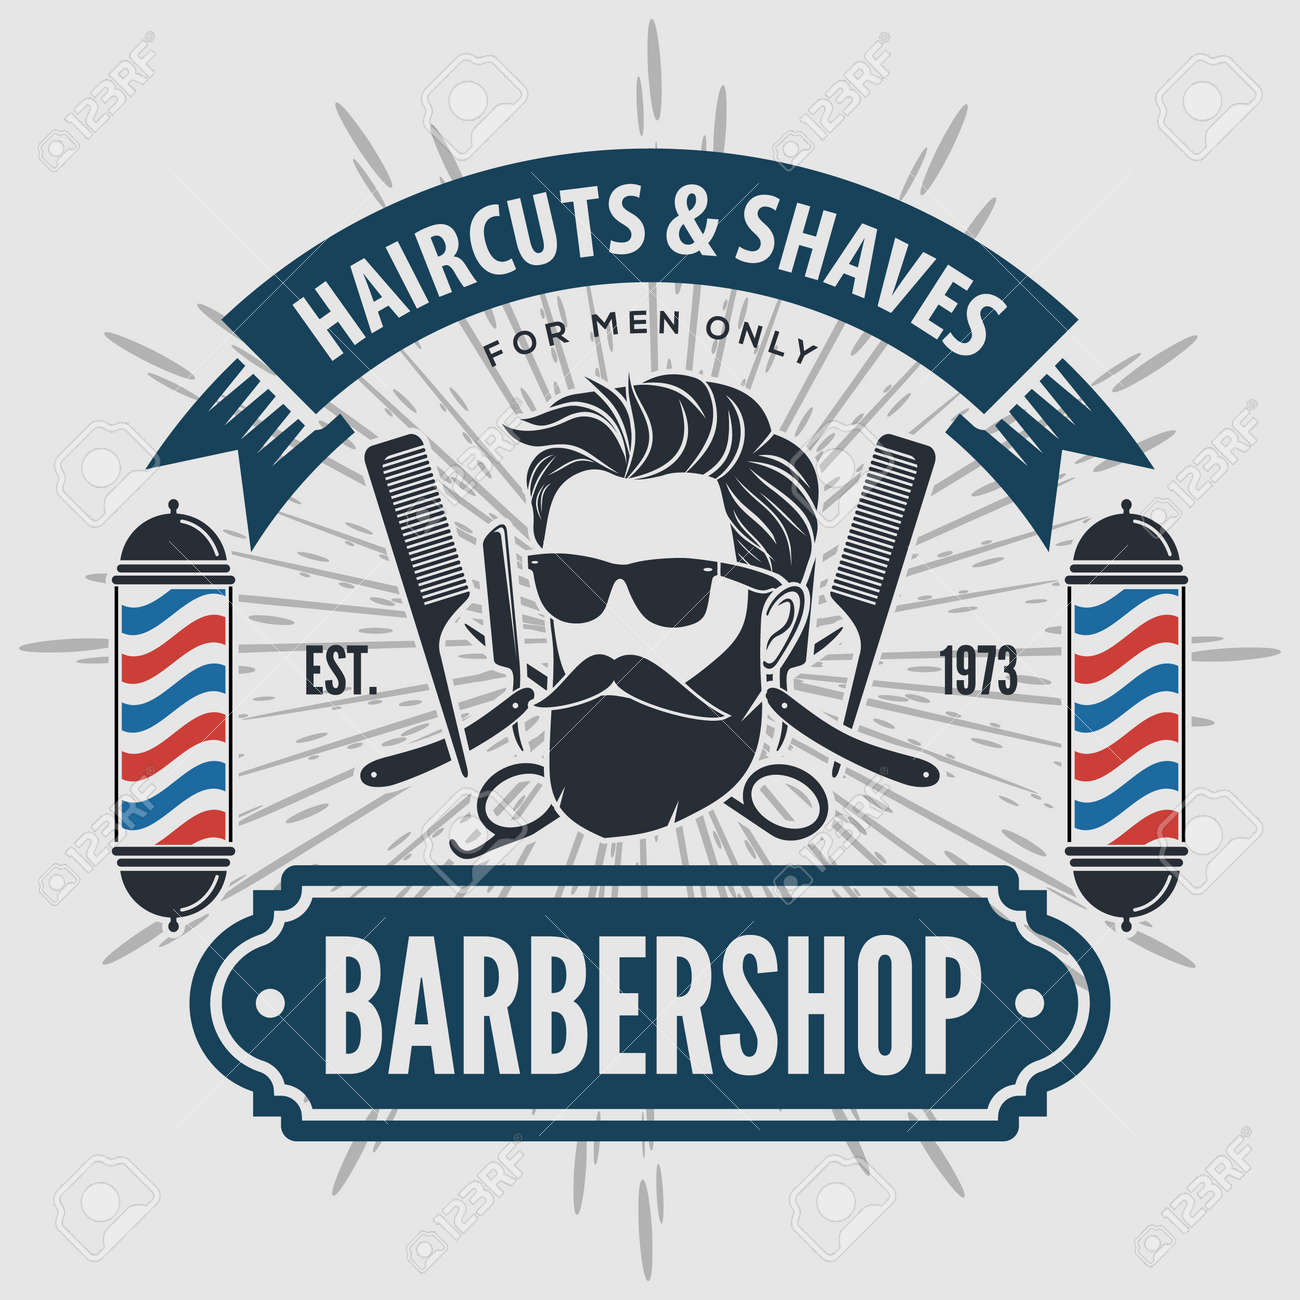 Barber shop poster template with Bearded men - 169500873